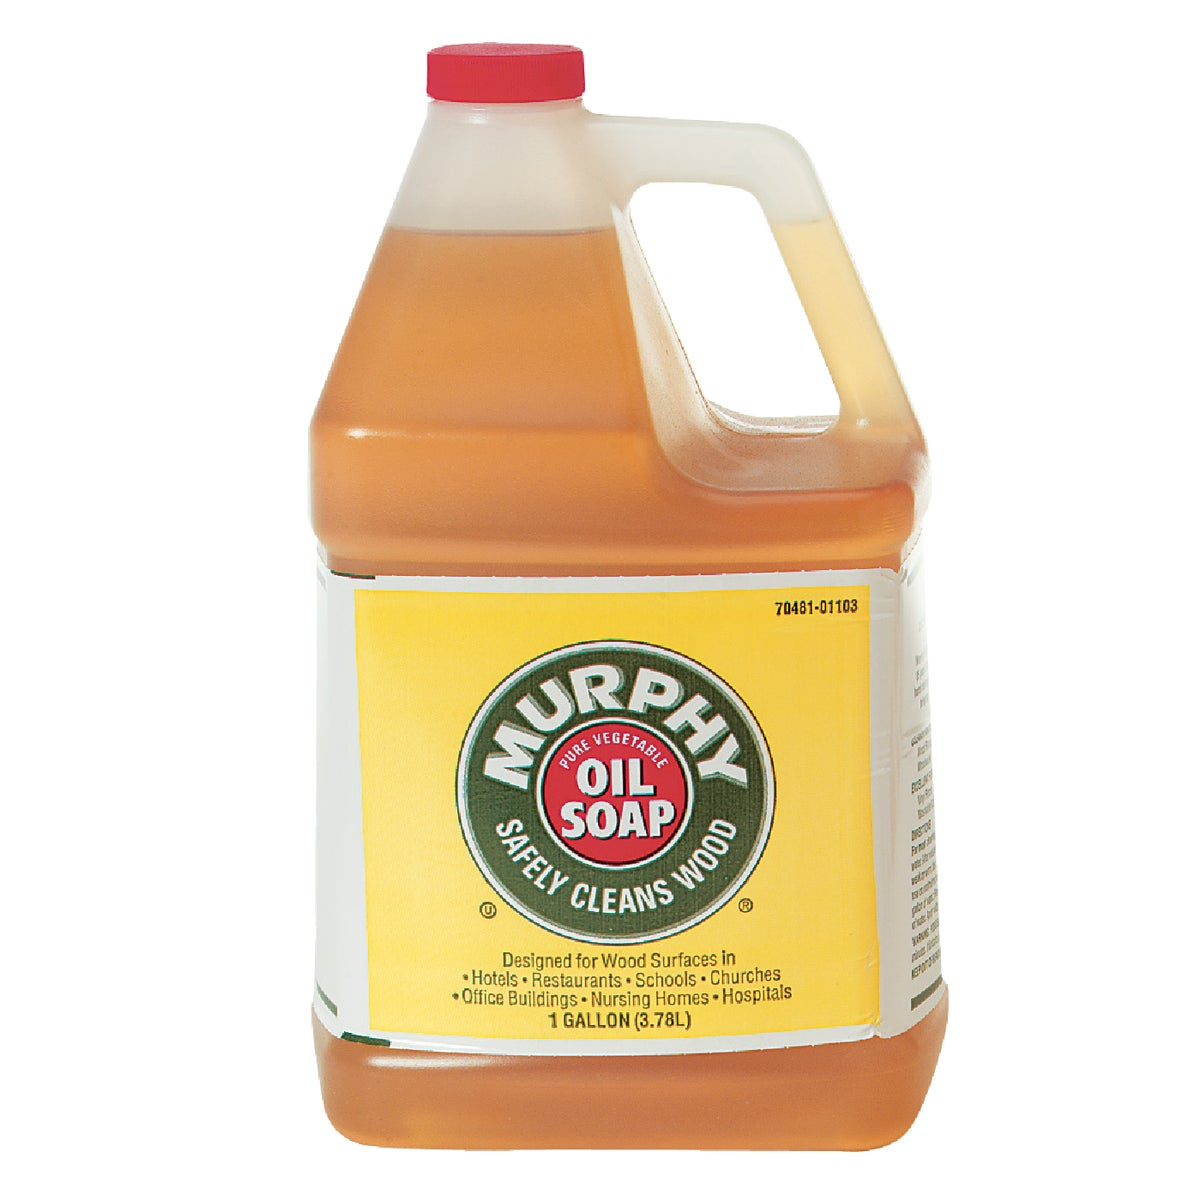 Murphy Oil Soap Liquid Wood Cleaner, CPC01103